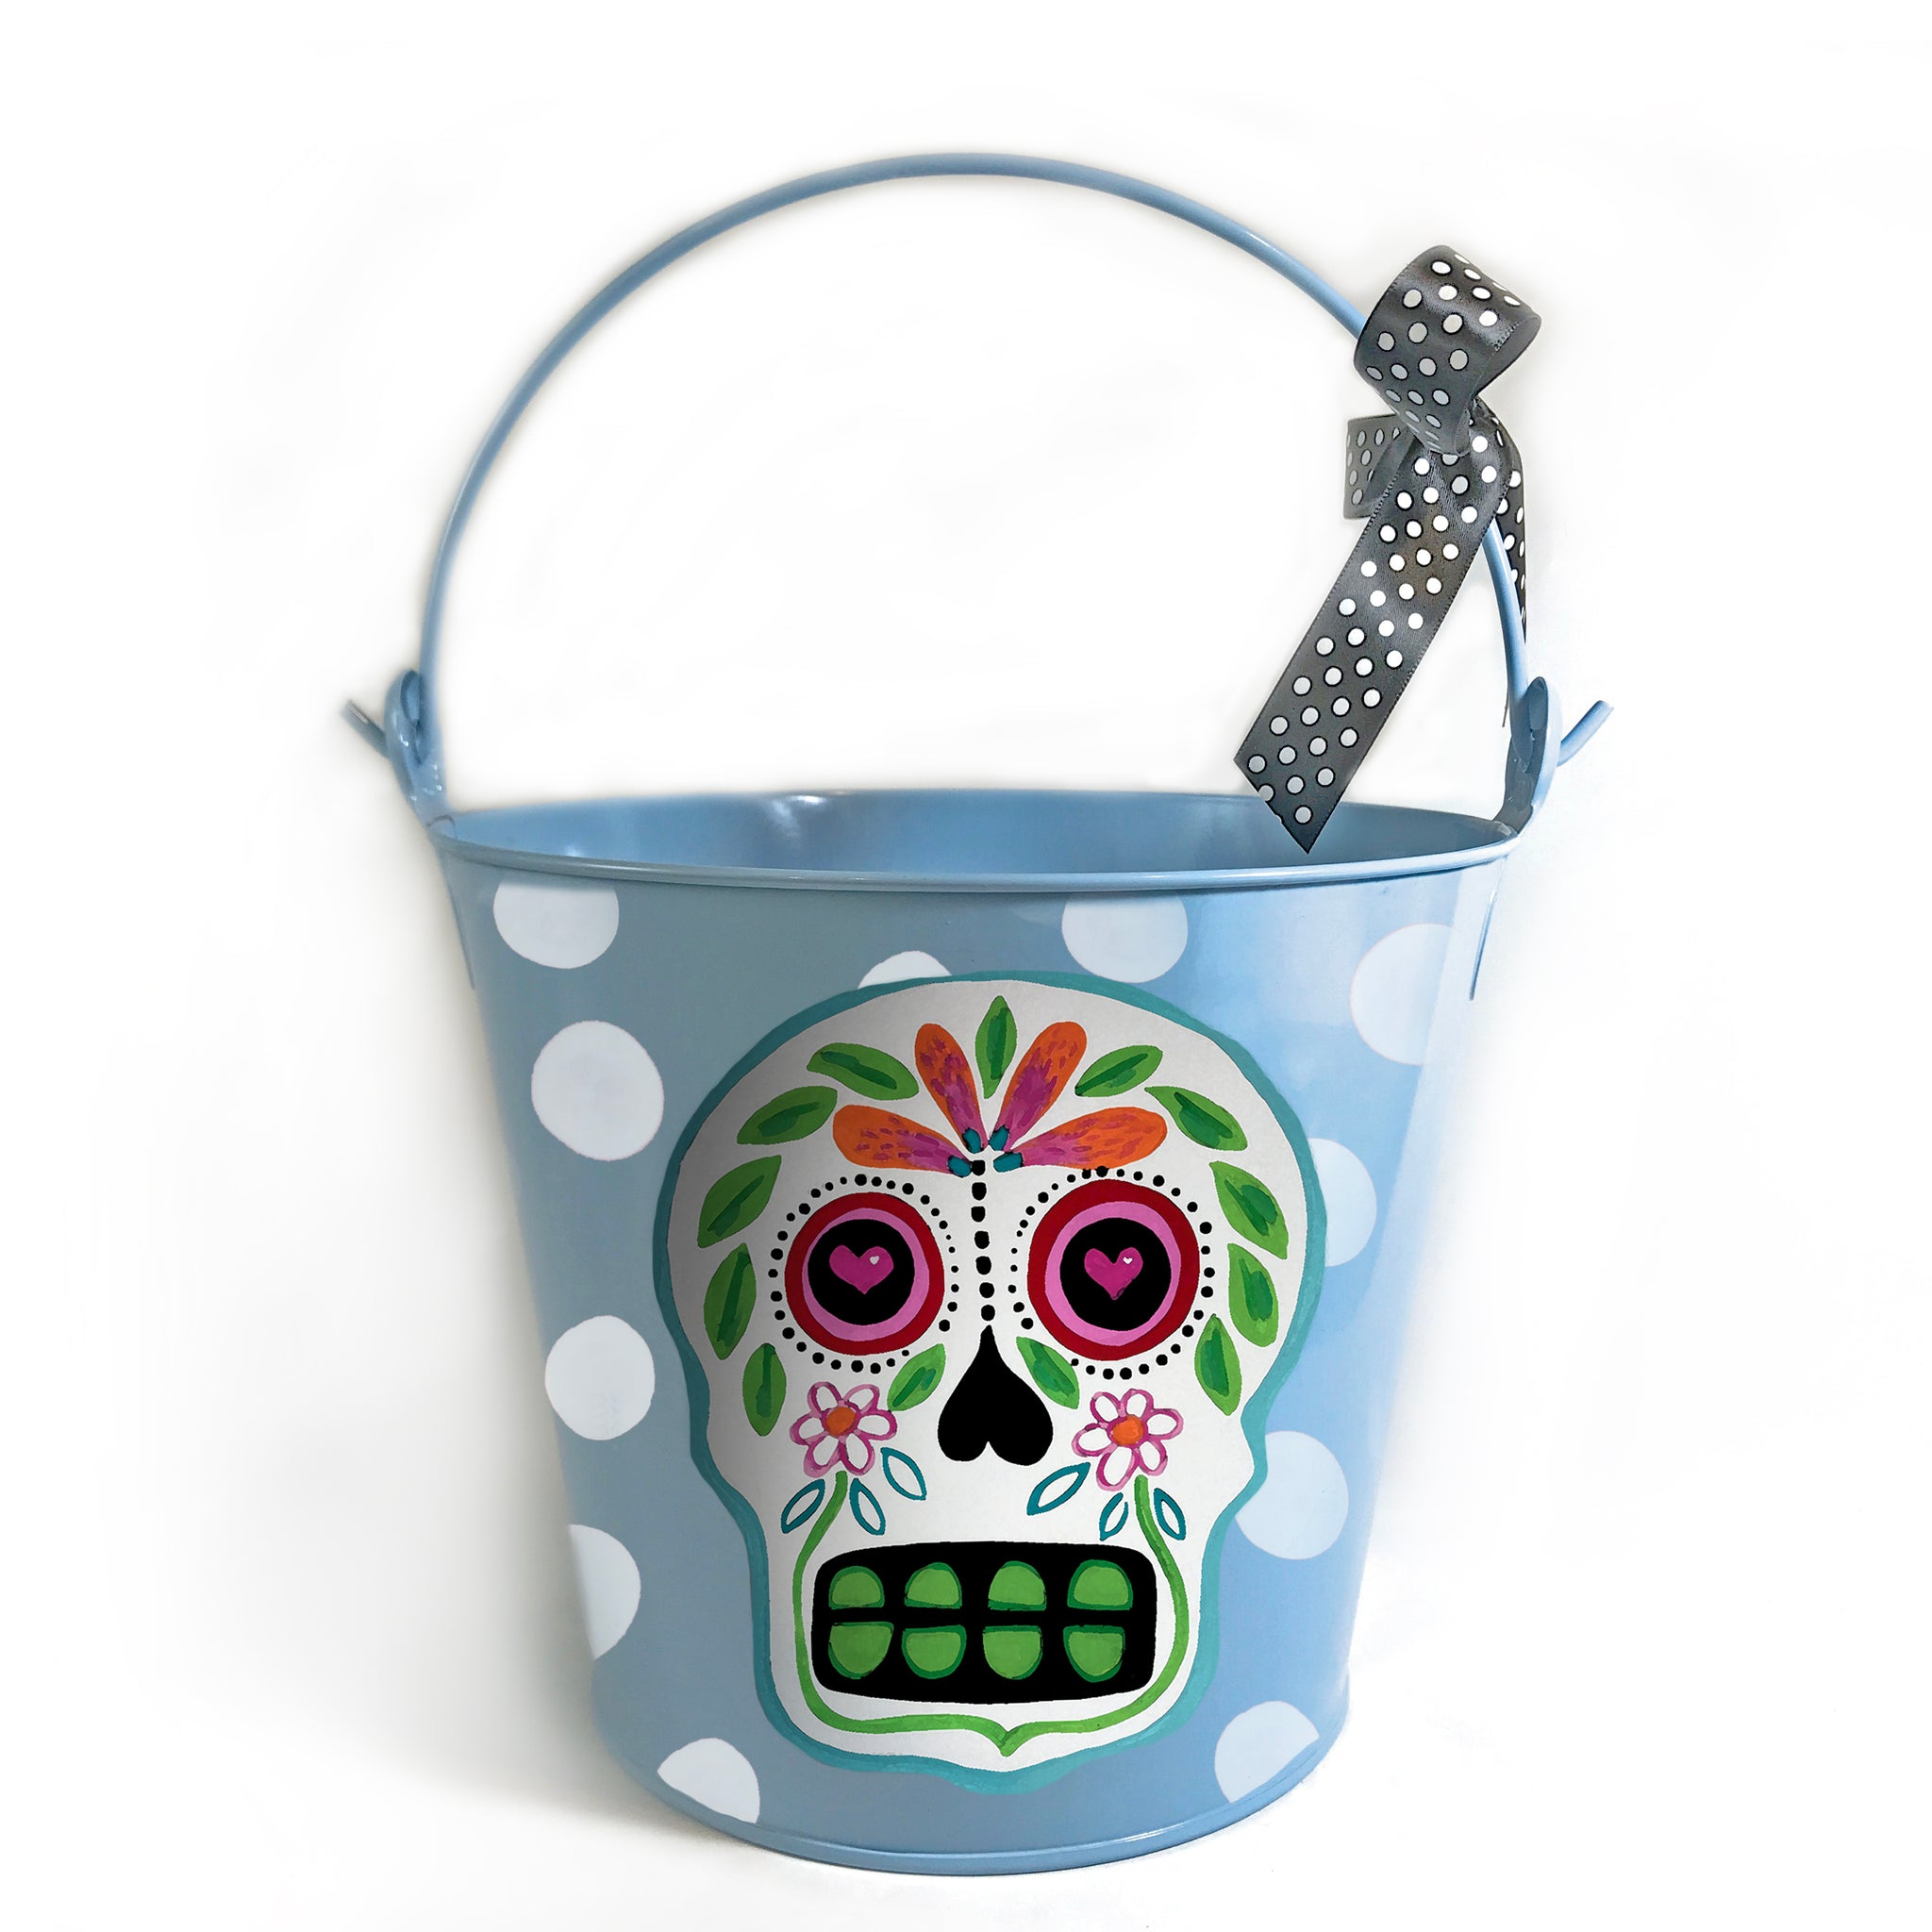 Halloween 'Sugar Skull' Pail on Blue Bucket